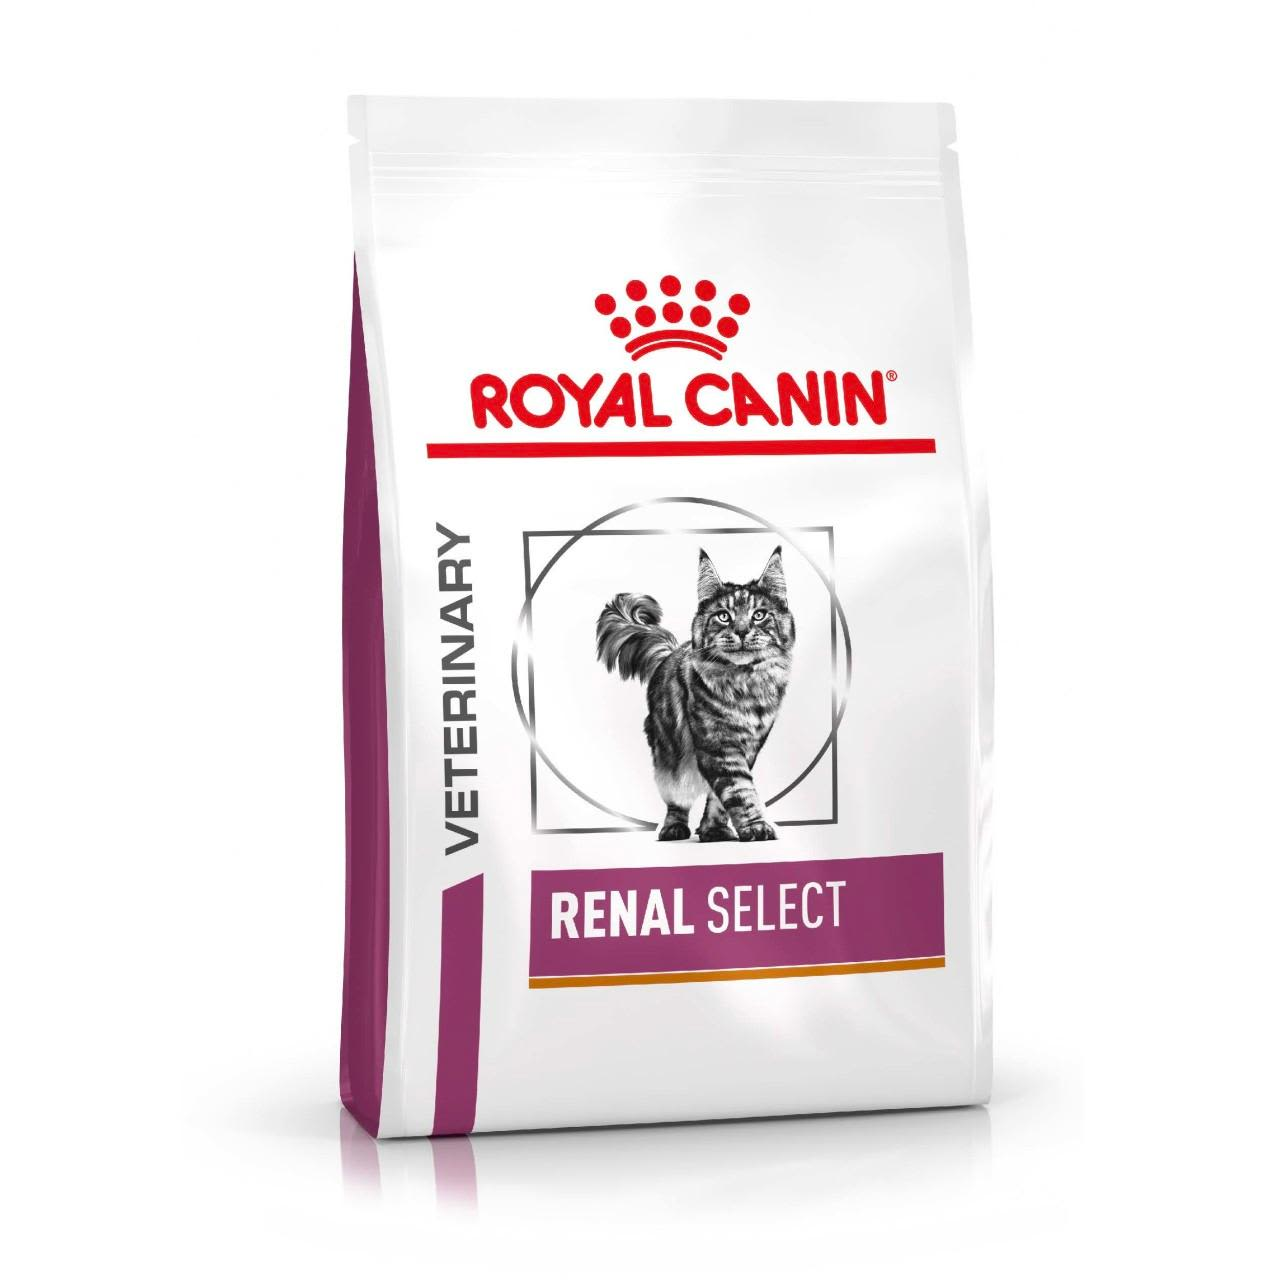 royal canin renal select cat. Black Bedroom Furniture Sets. Home Design Ideas